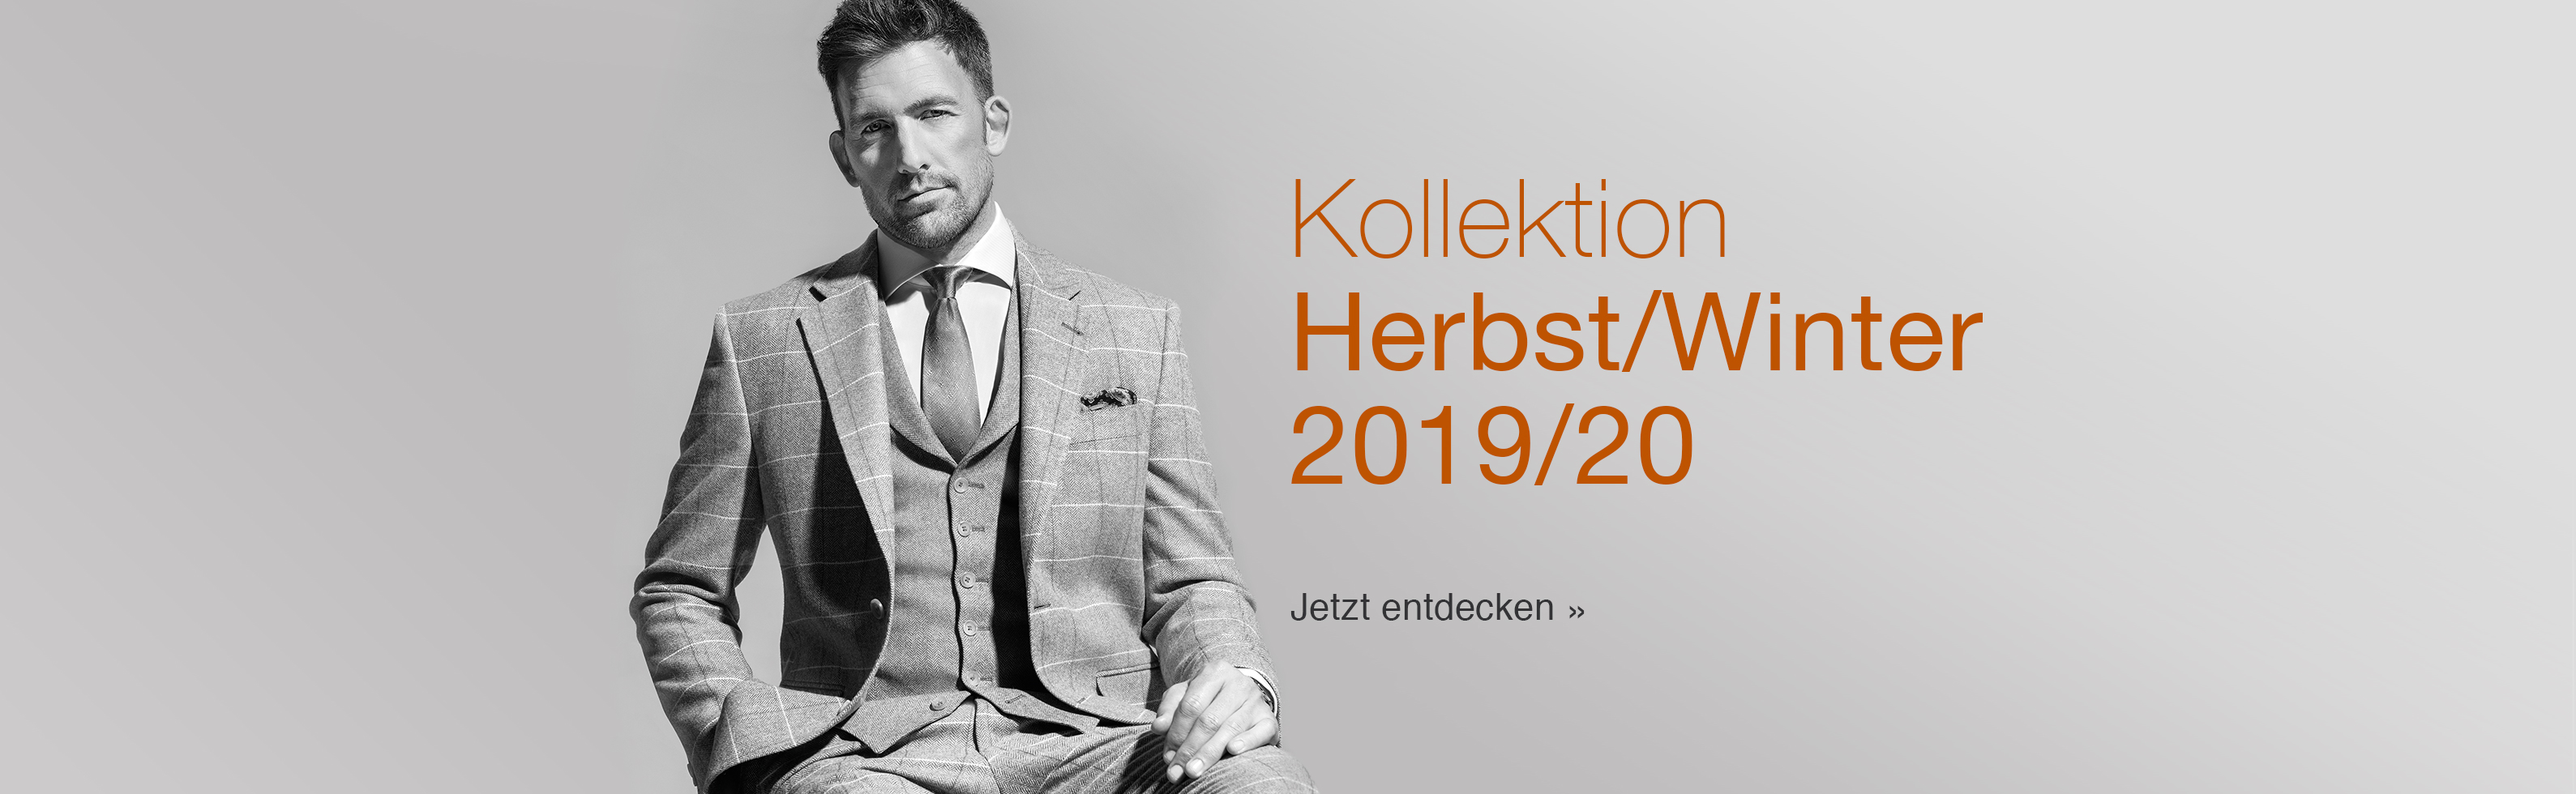 Herren Herbst/Winter Kollektion 2019/20